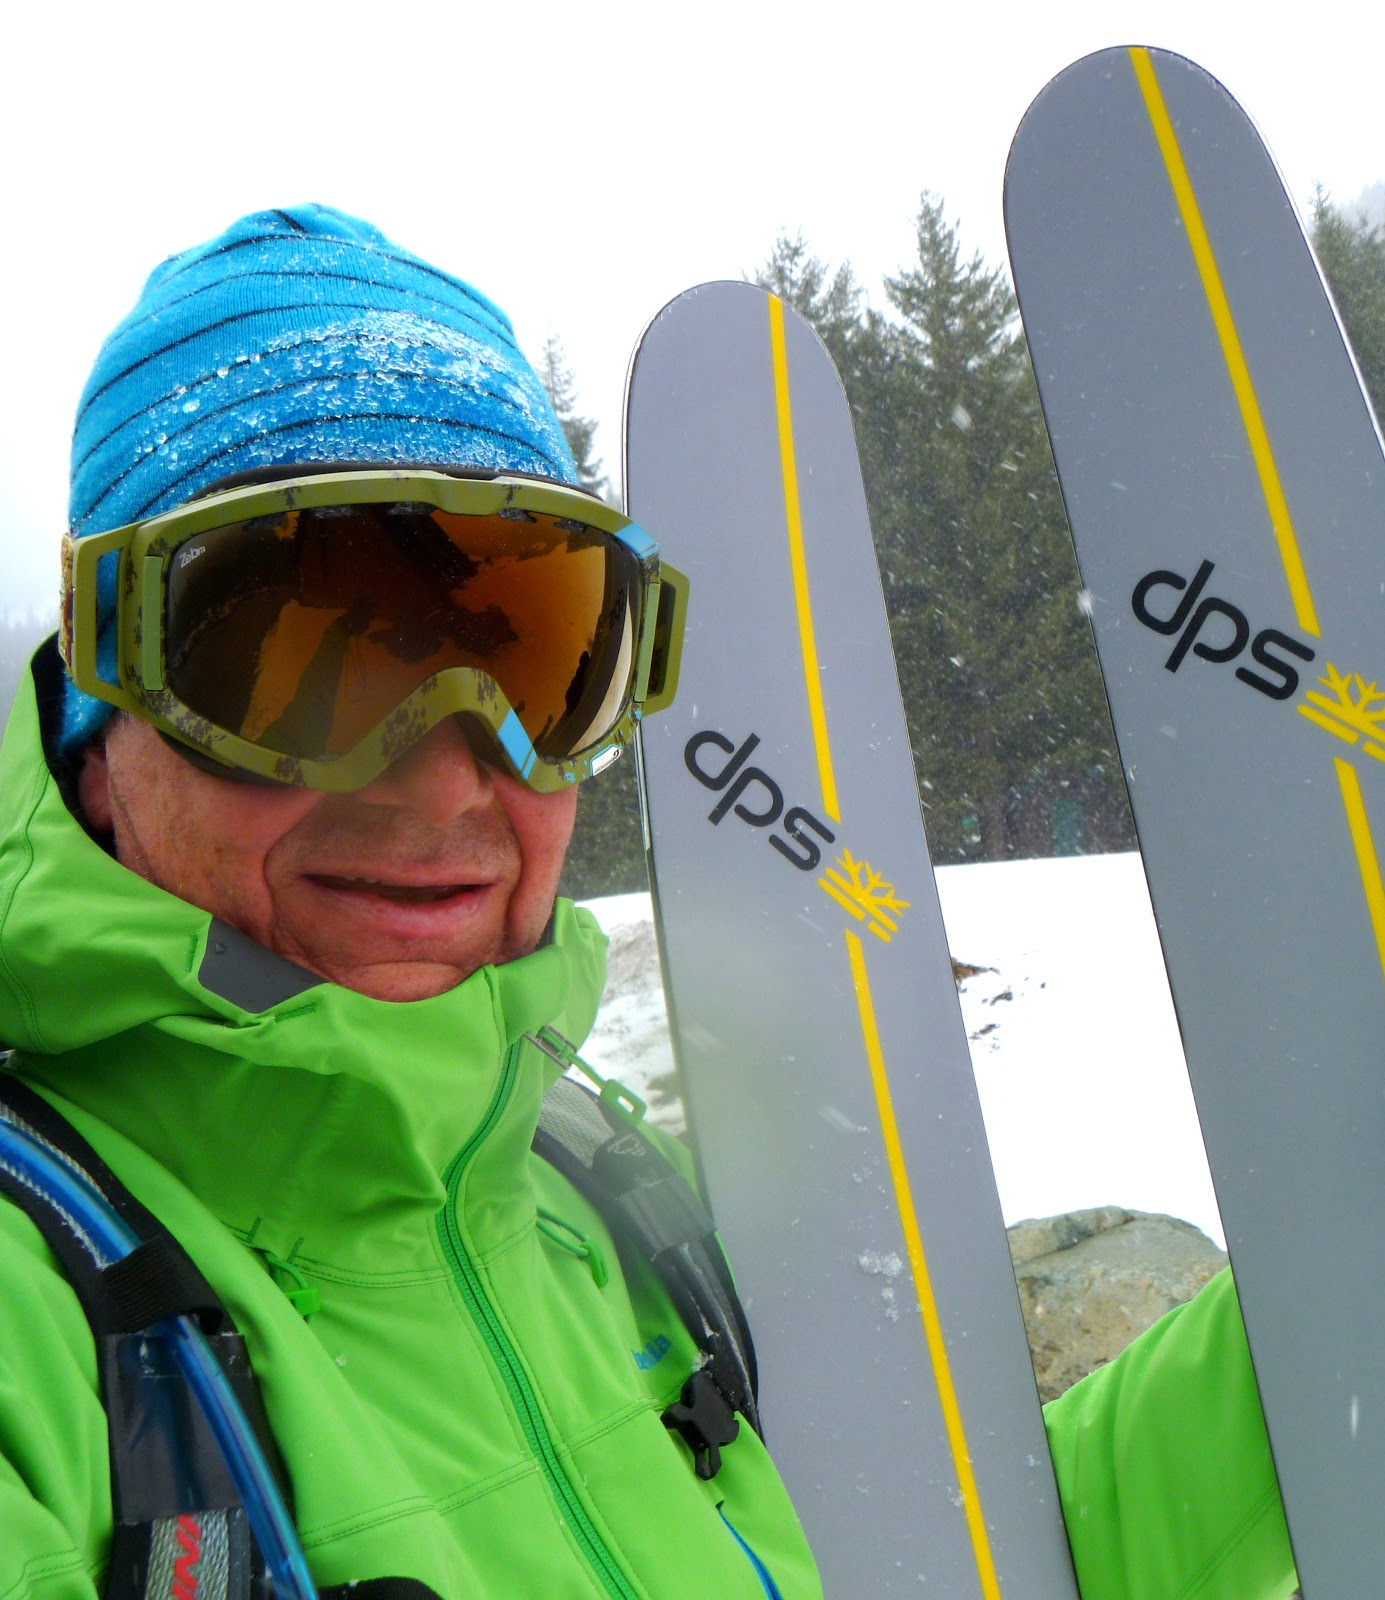 Cold Thistle: Skis Reviews At Cold Thistle?